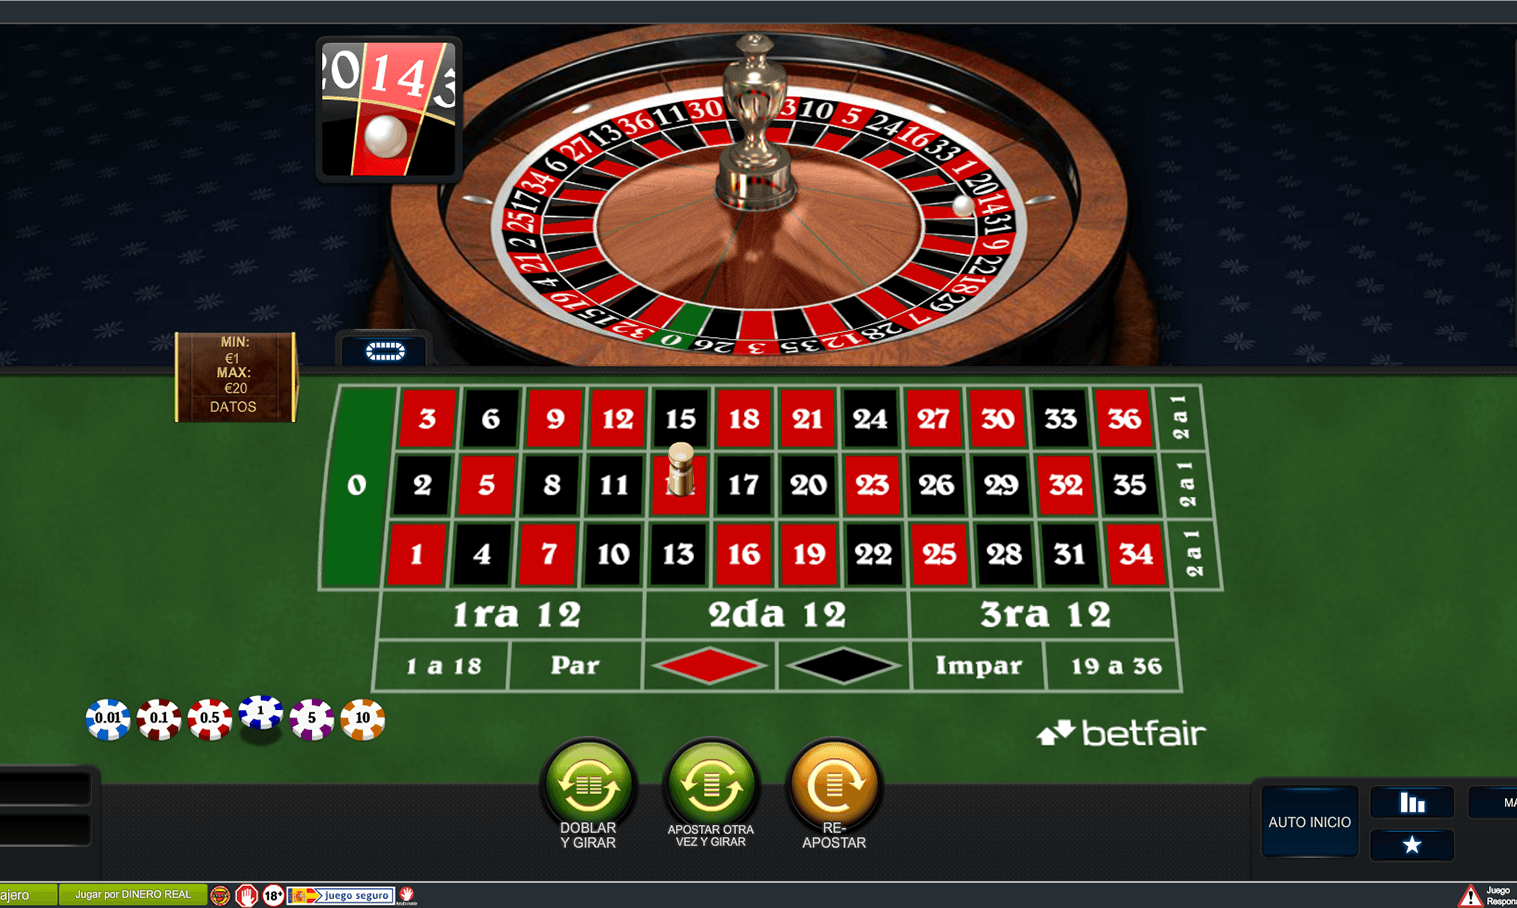 Ruleta europea pronosticos